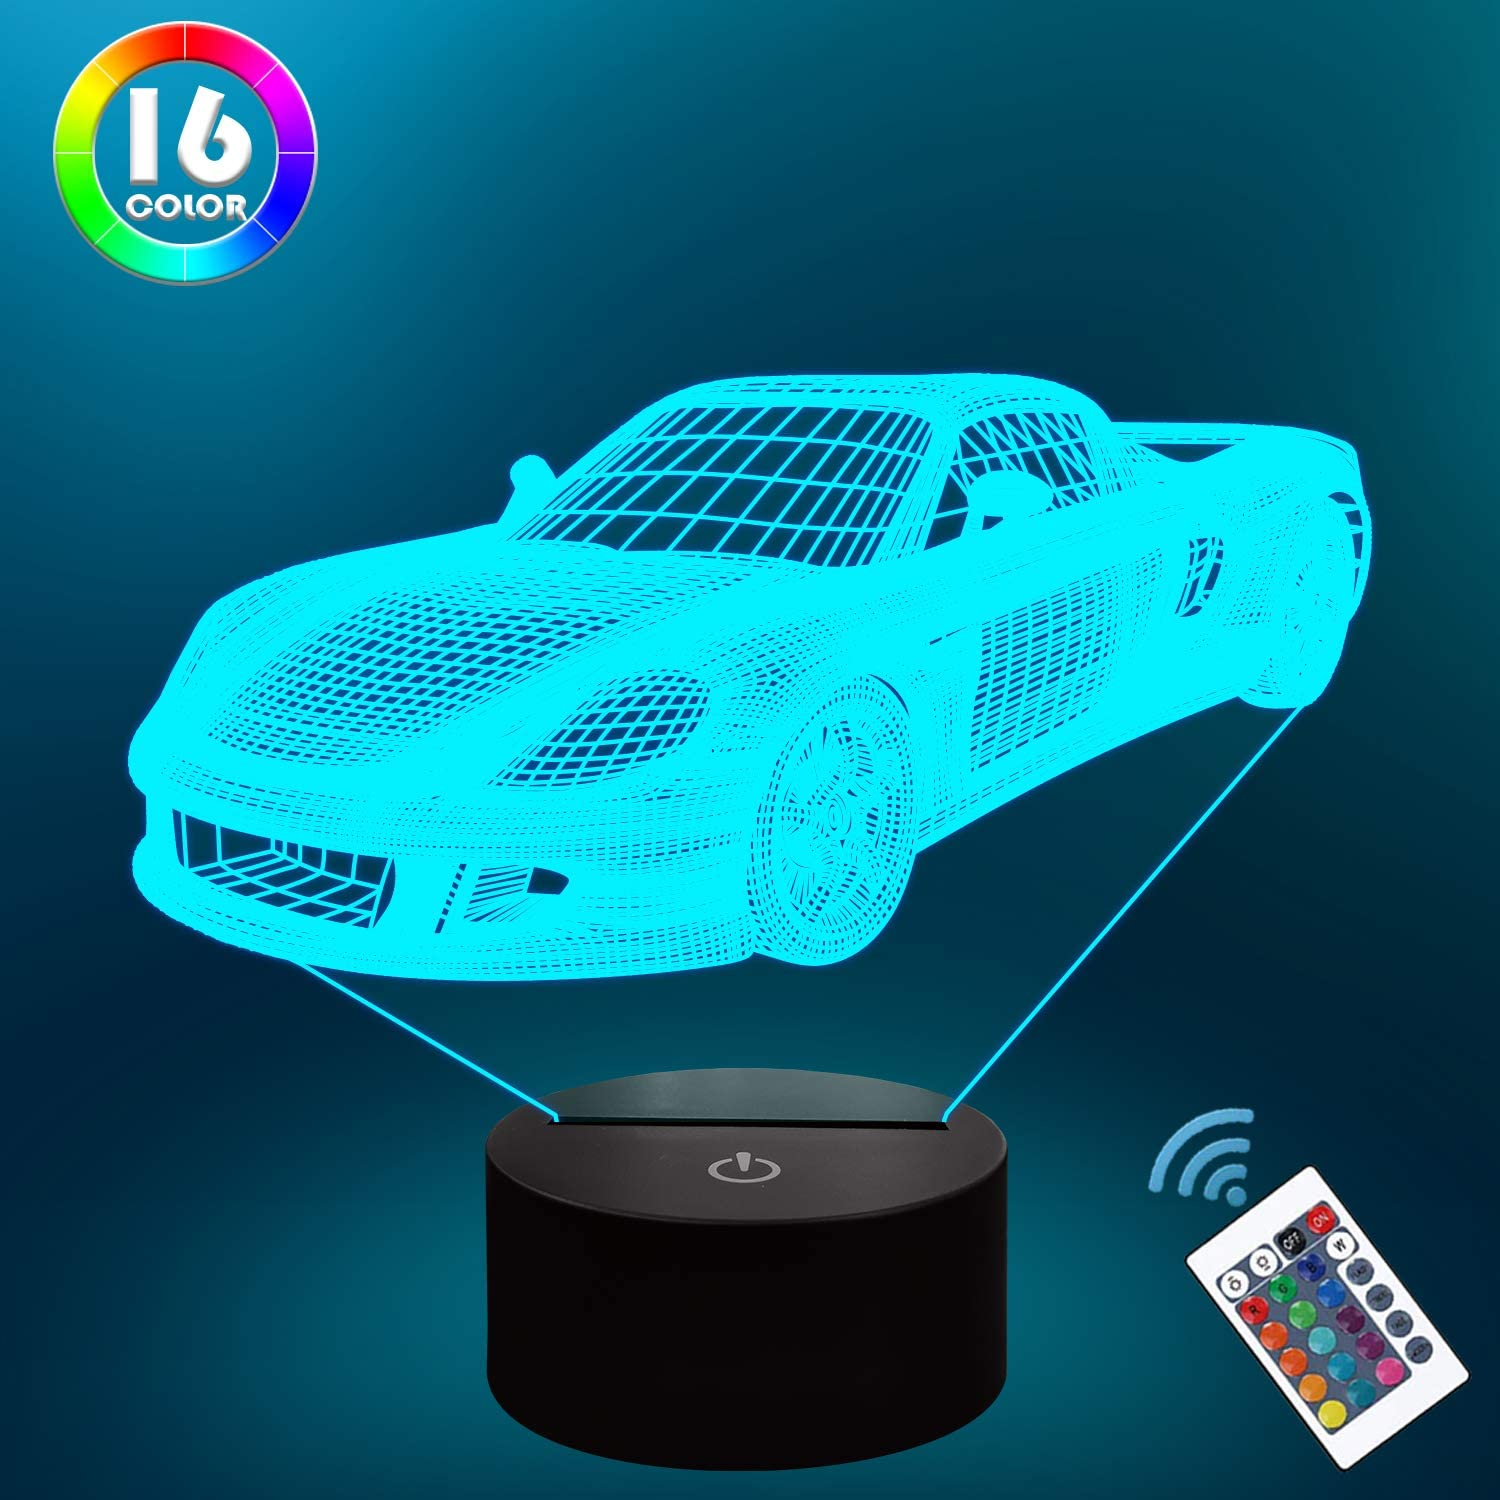 Lampeez Car Gifts,Car Night Lamp for Kids with Remote & 16 Color Changing Nightlight, Dimmable,Creative Gift Idea as Xmas Holiday Birthday Gifts